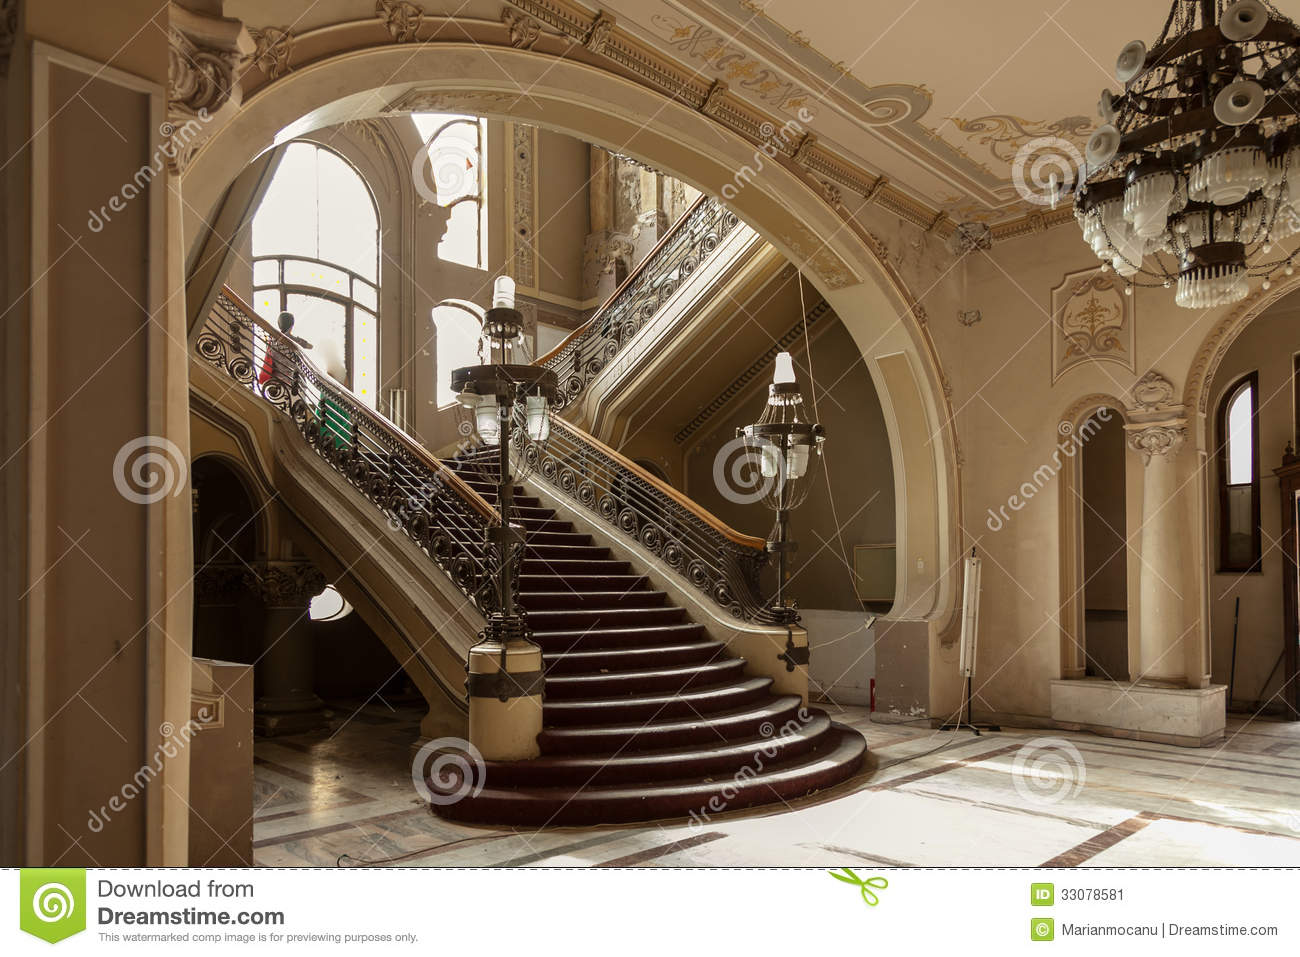 Stairs detail in old history casino building stock image for Art nouveau fenetre